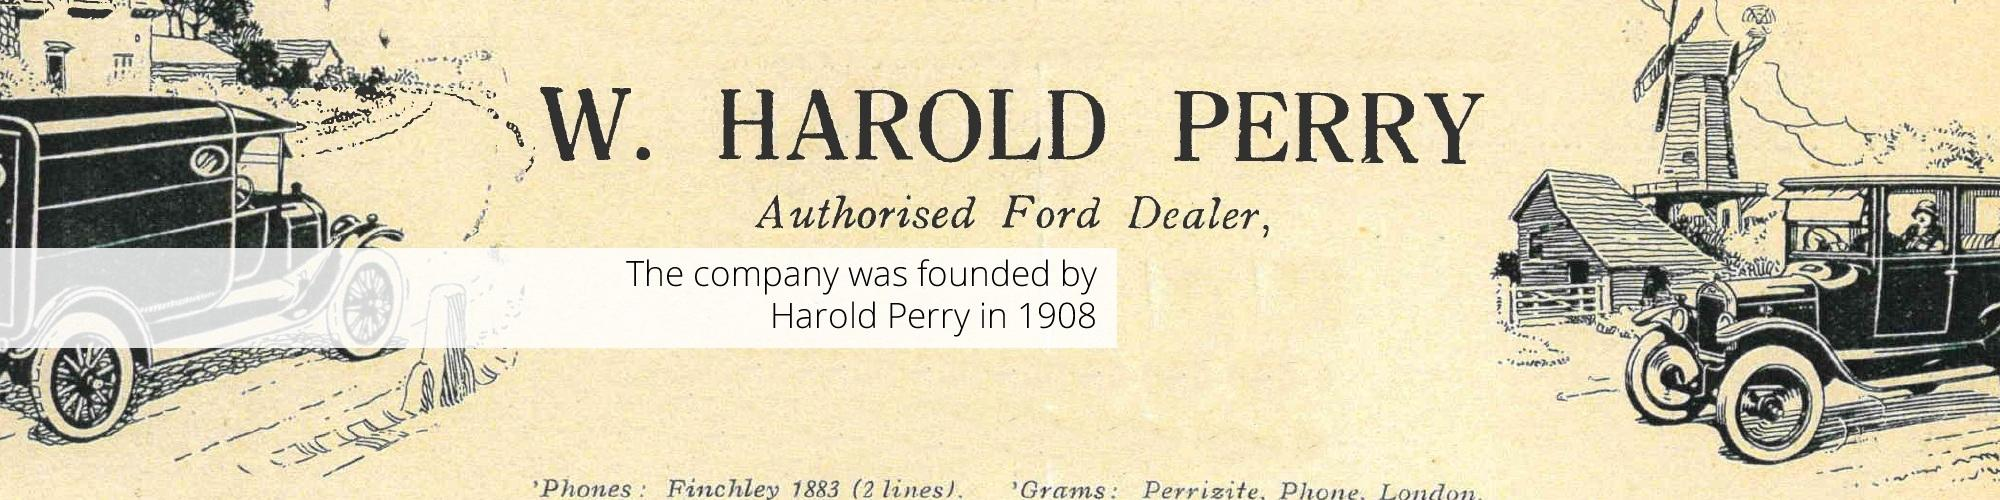 The history of Perrys motor sales